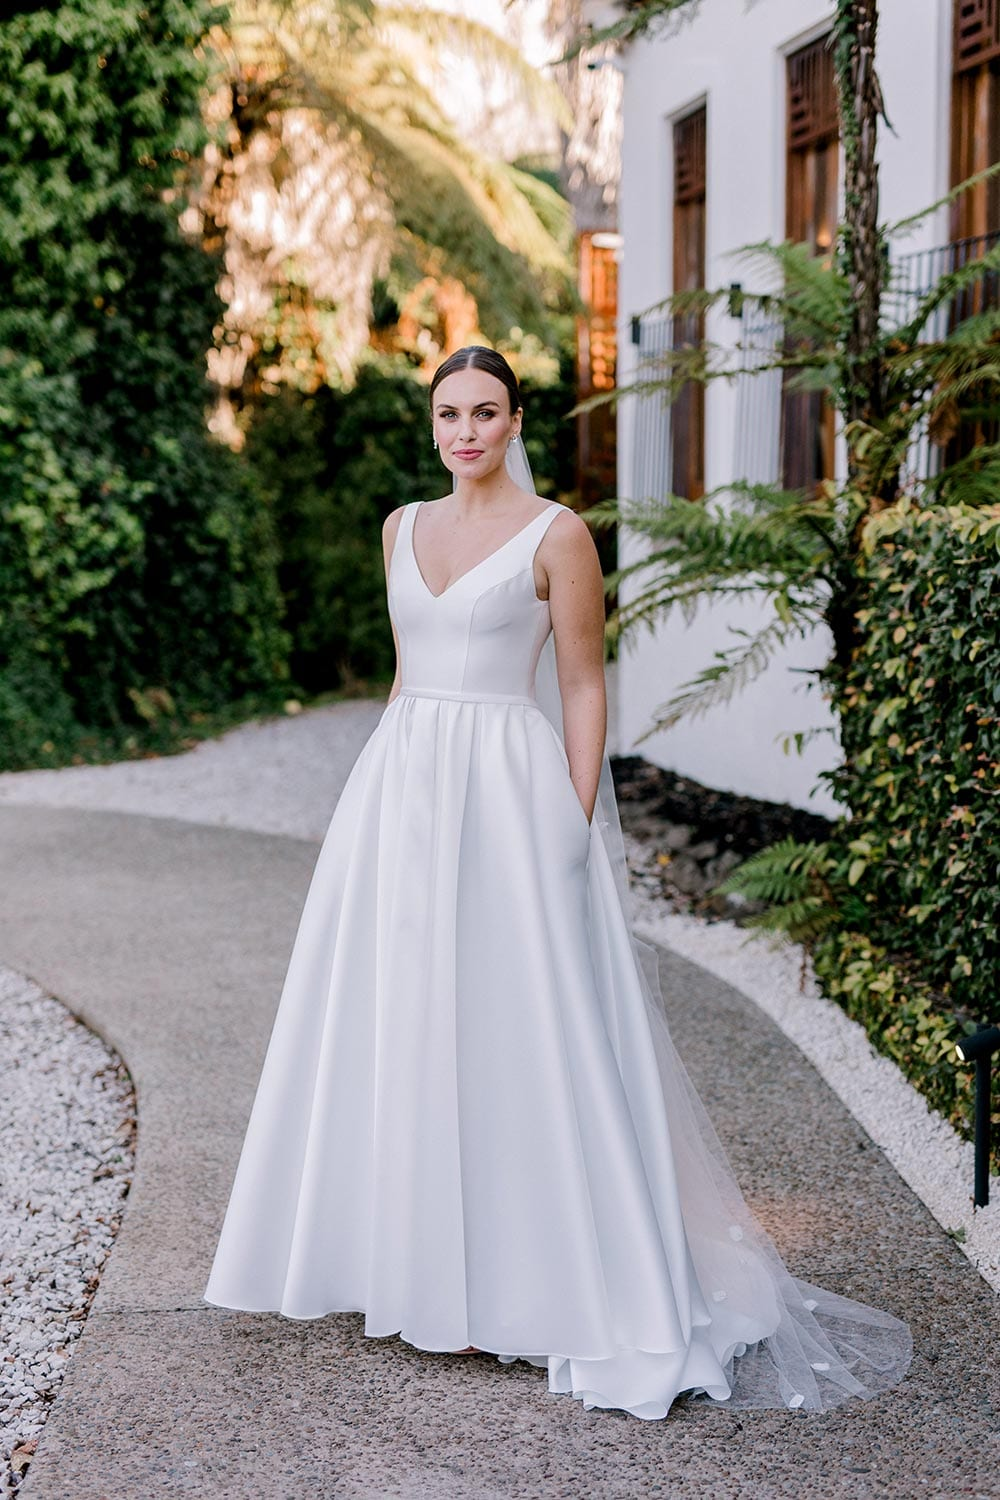 Madison Wedding Dress from Vinka Design. Classic Mikado satin wedding dress. Structured bodice with deep V-neckline & low back. Side pockets in the skirt give fun & versatility, with a sweeping train. Full length view of gown from the front, hands in pockets. Photographed outdoors.